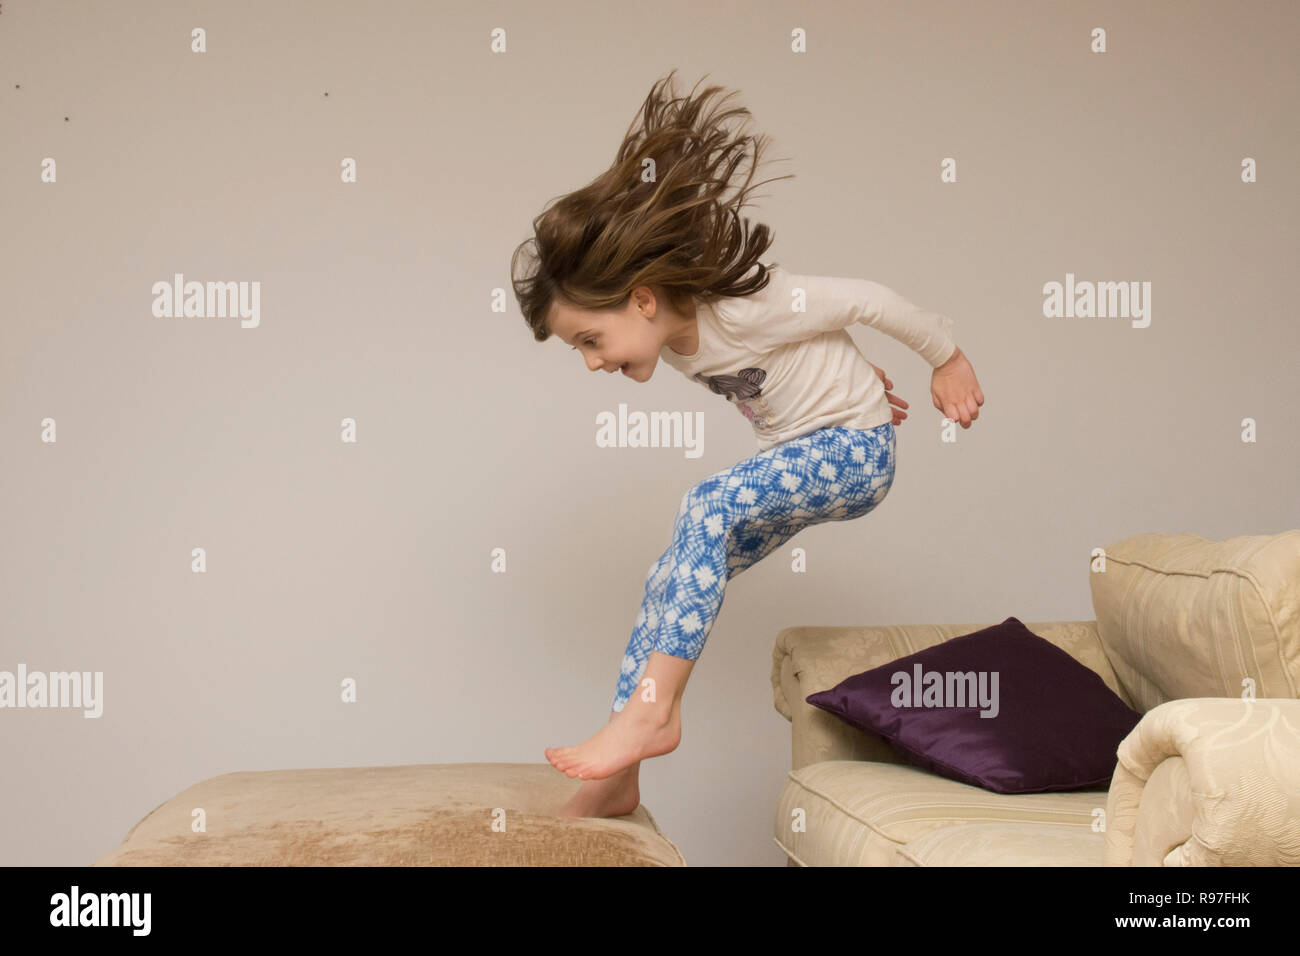 child, girl indoors leaping, jumping on furniture, sofa, being energetic, hyperactive, having fun, six years old, Stock Photo